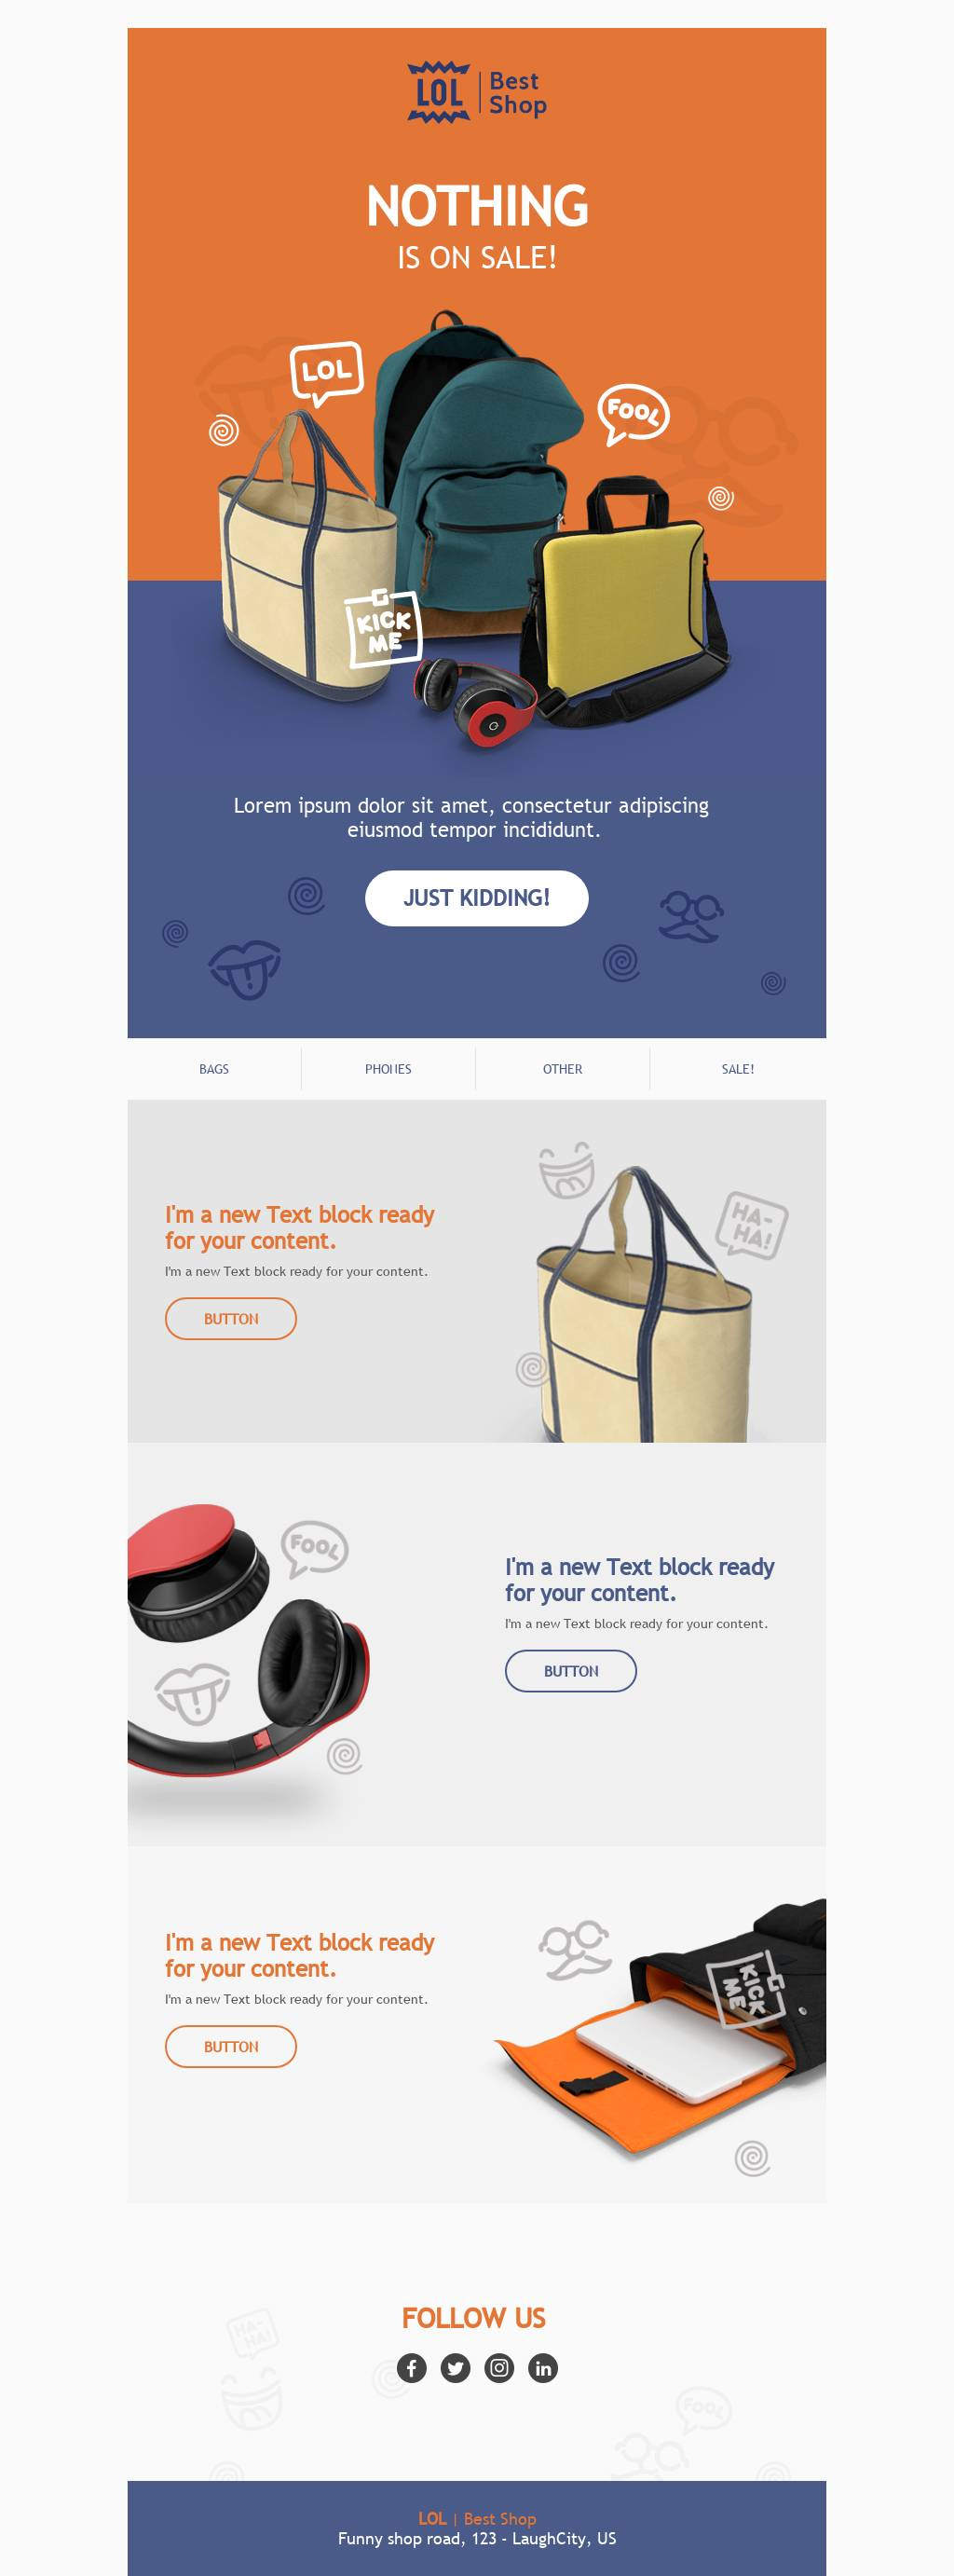 April Fools' day email template